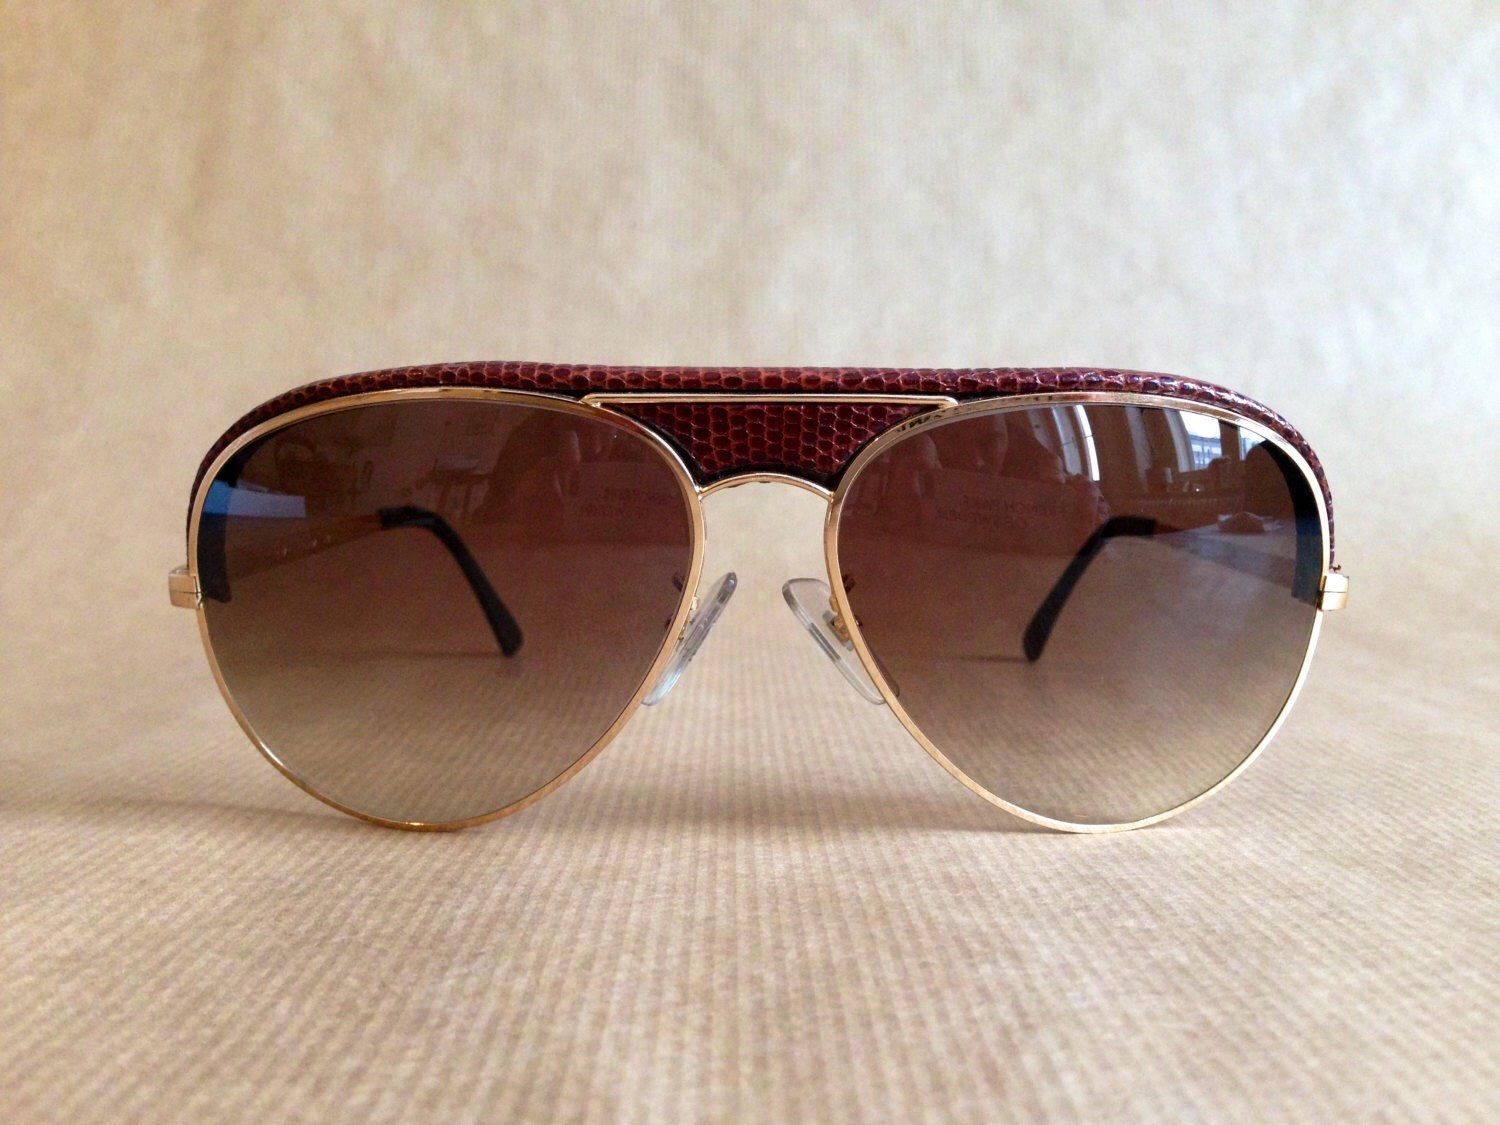 57337e8ae4d Charles Jourdan 60 8259 Snakeskin Vintage Sunglasses New Old Stock von  FrenchPartofSweden auf Etsy https